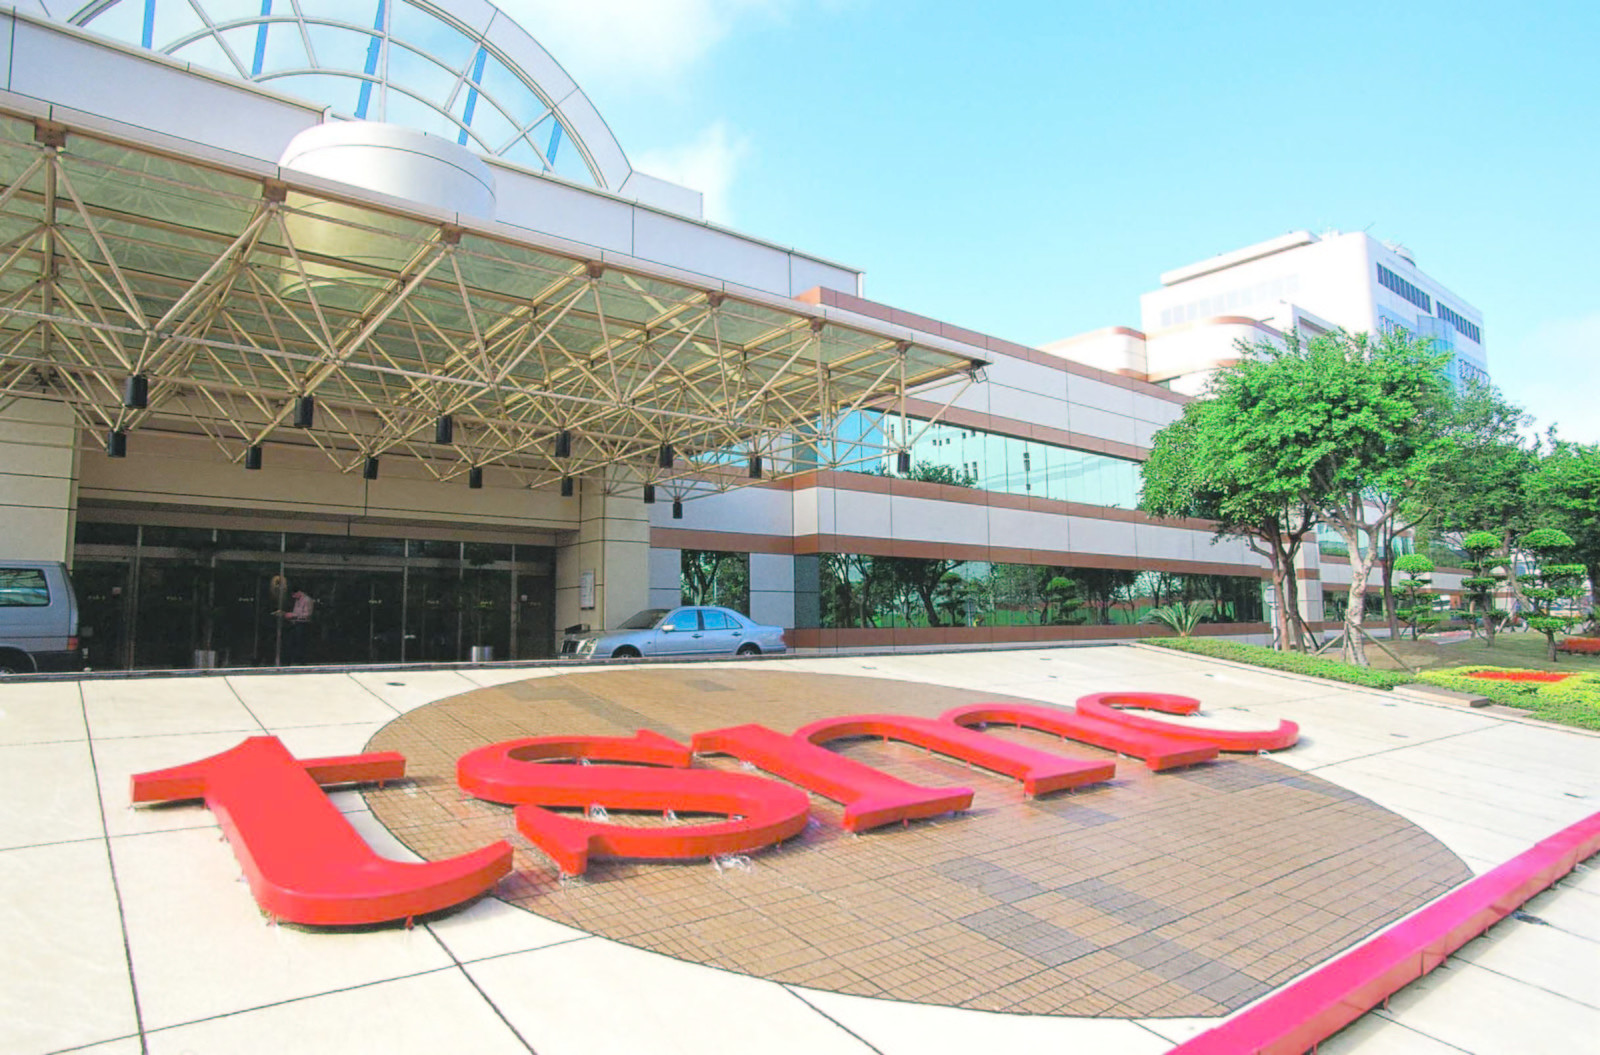 TSMC to Build New $15 7 Billion Fab in Taiwan, for 3 nm and 5 nm